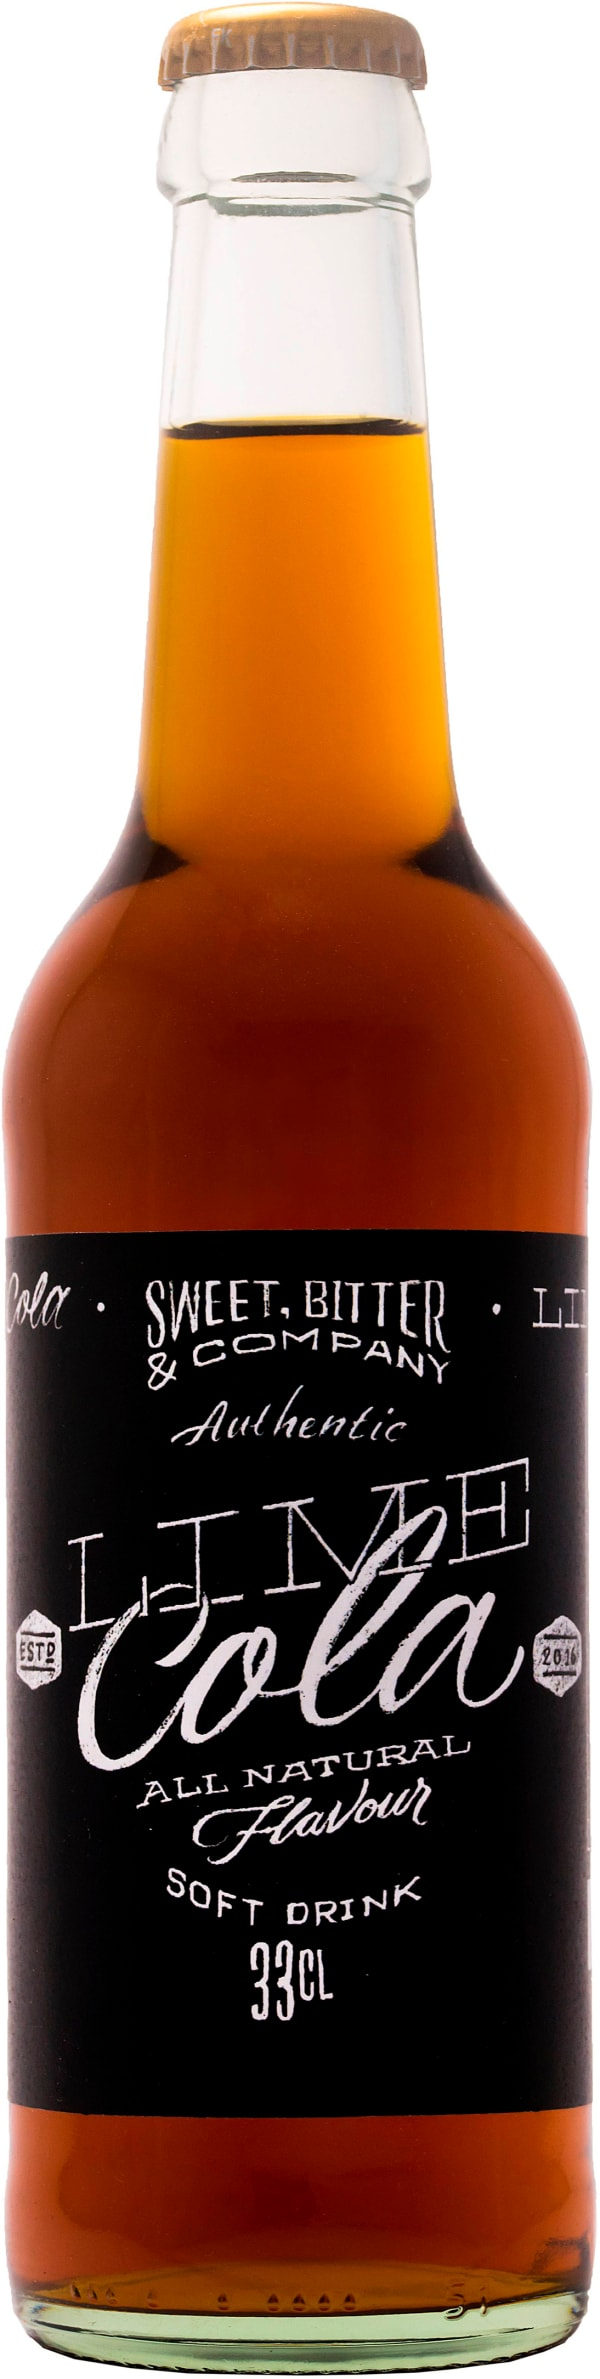 Sweet, Bitter & Co Lime-Cola